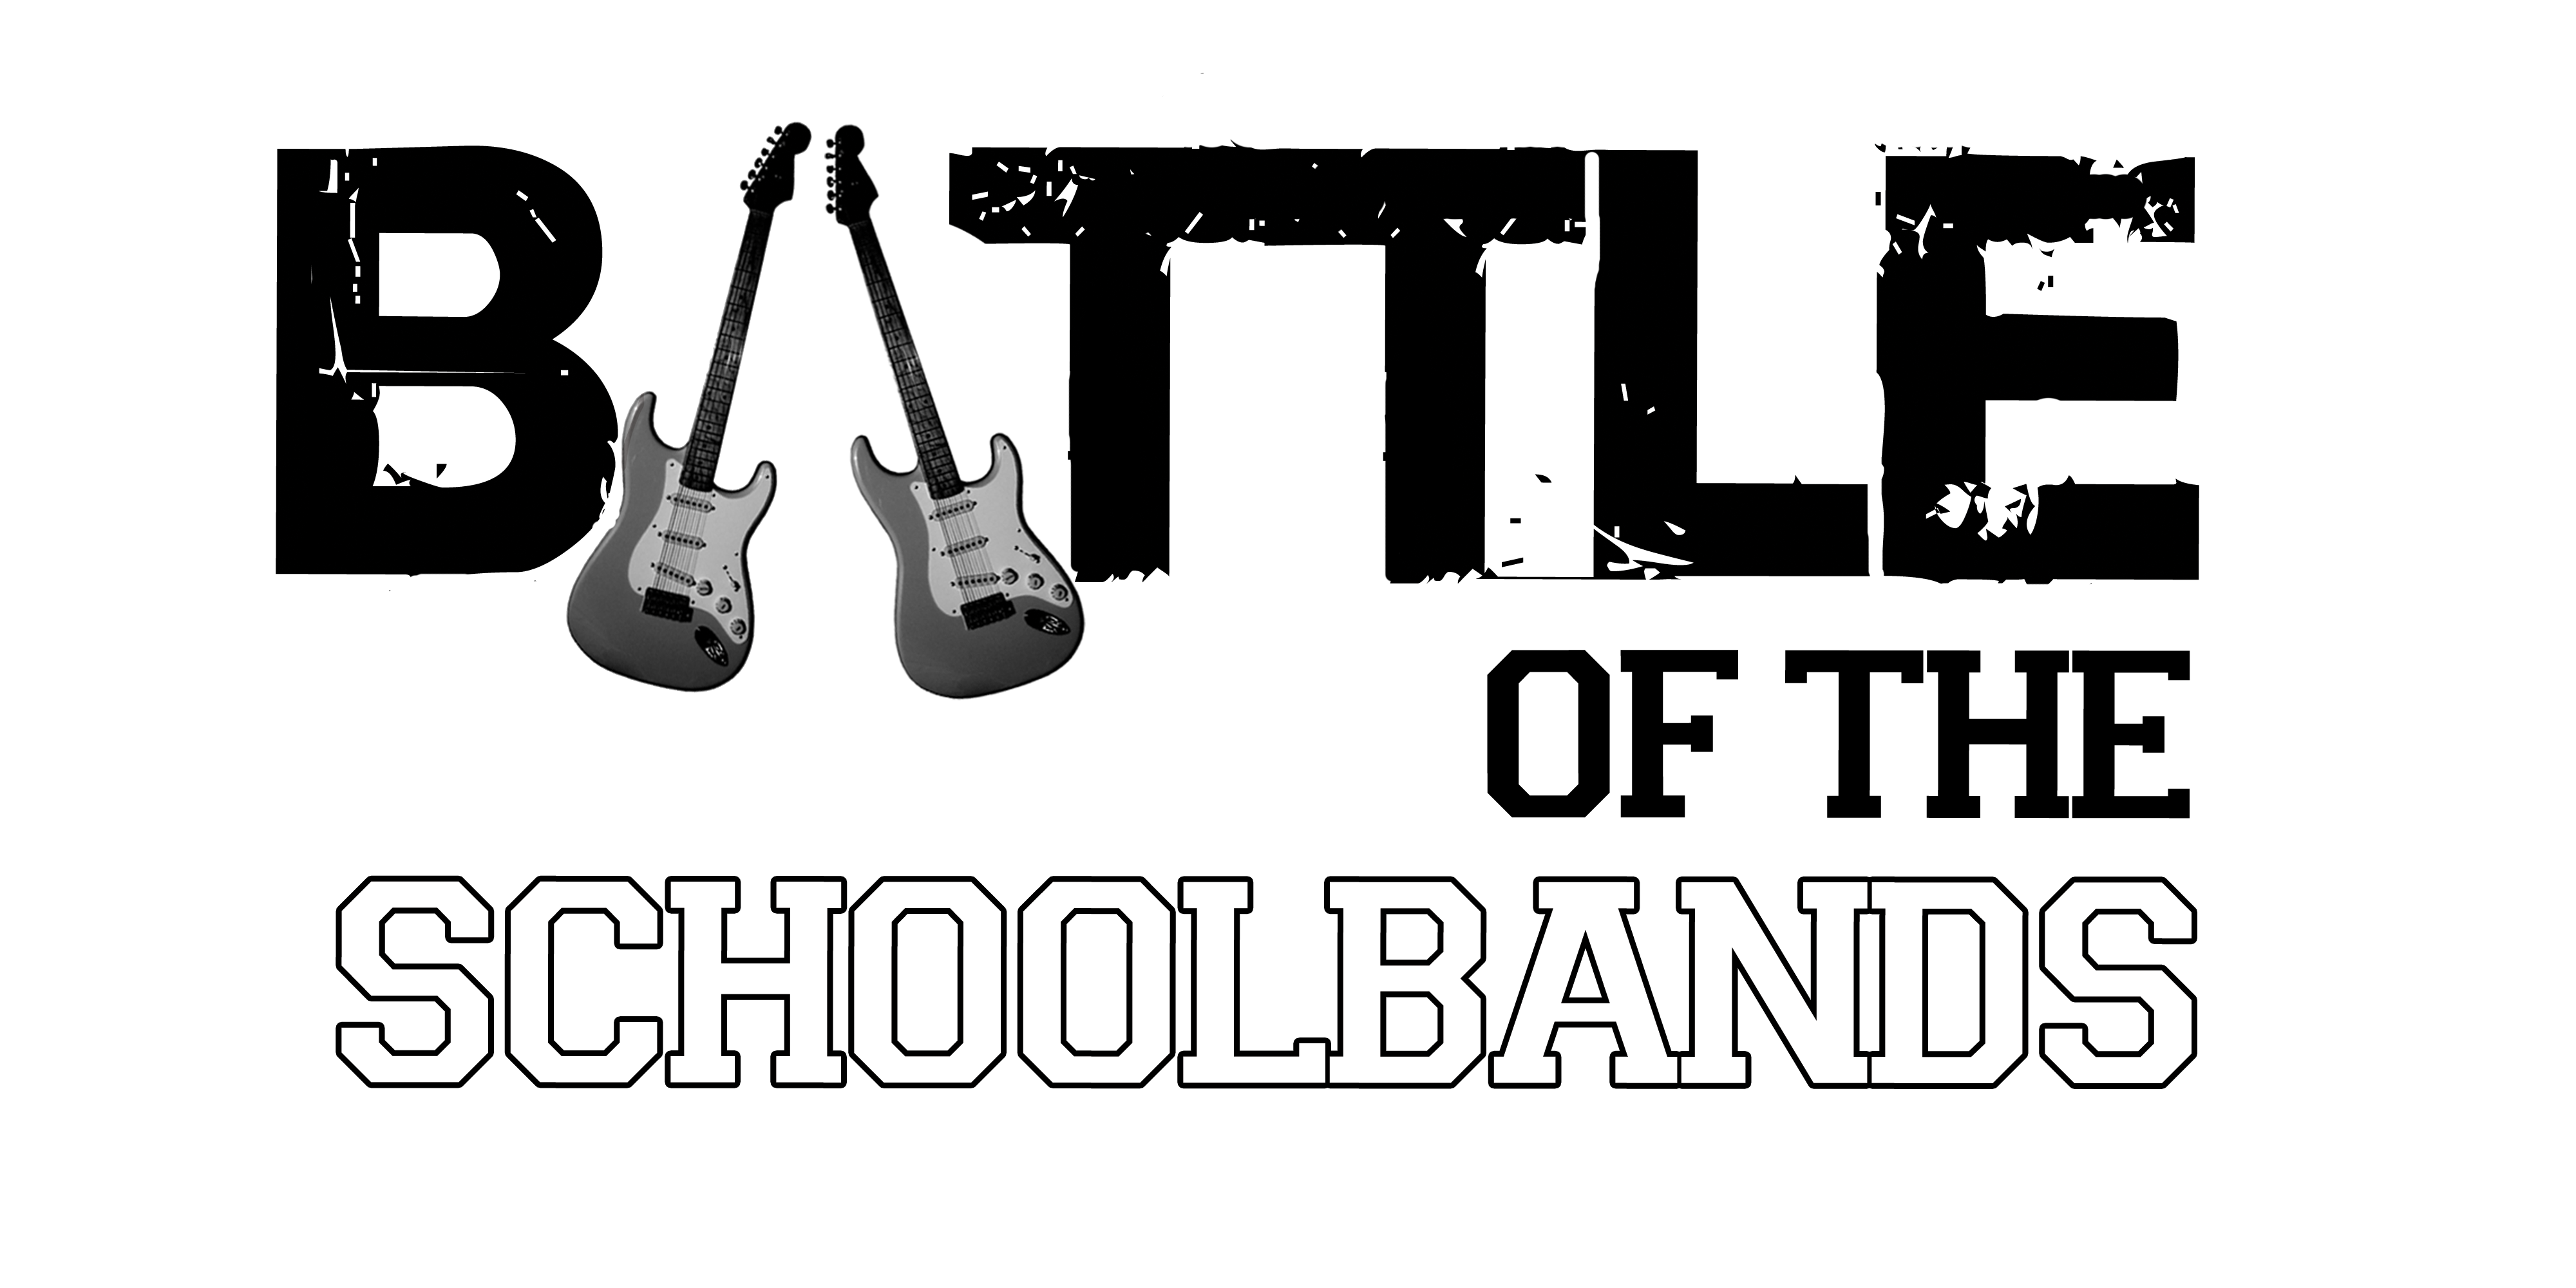 Afbeeldingsresultaat voor battle of the schoolbands